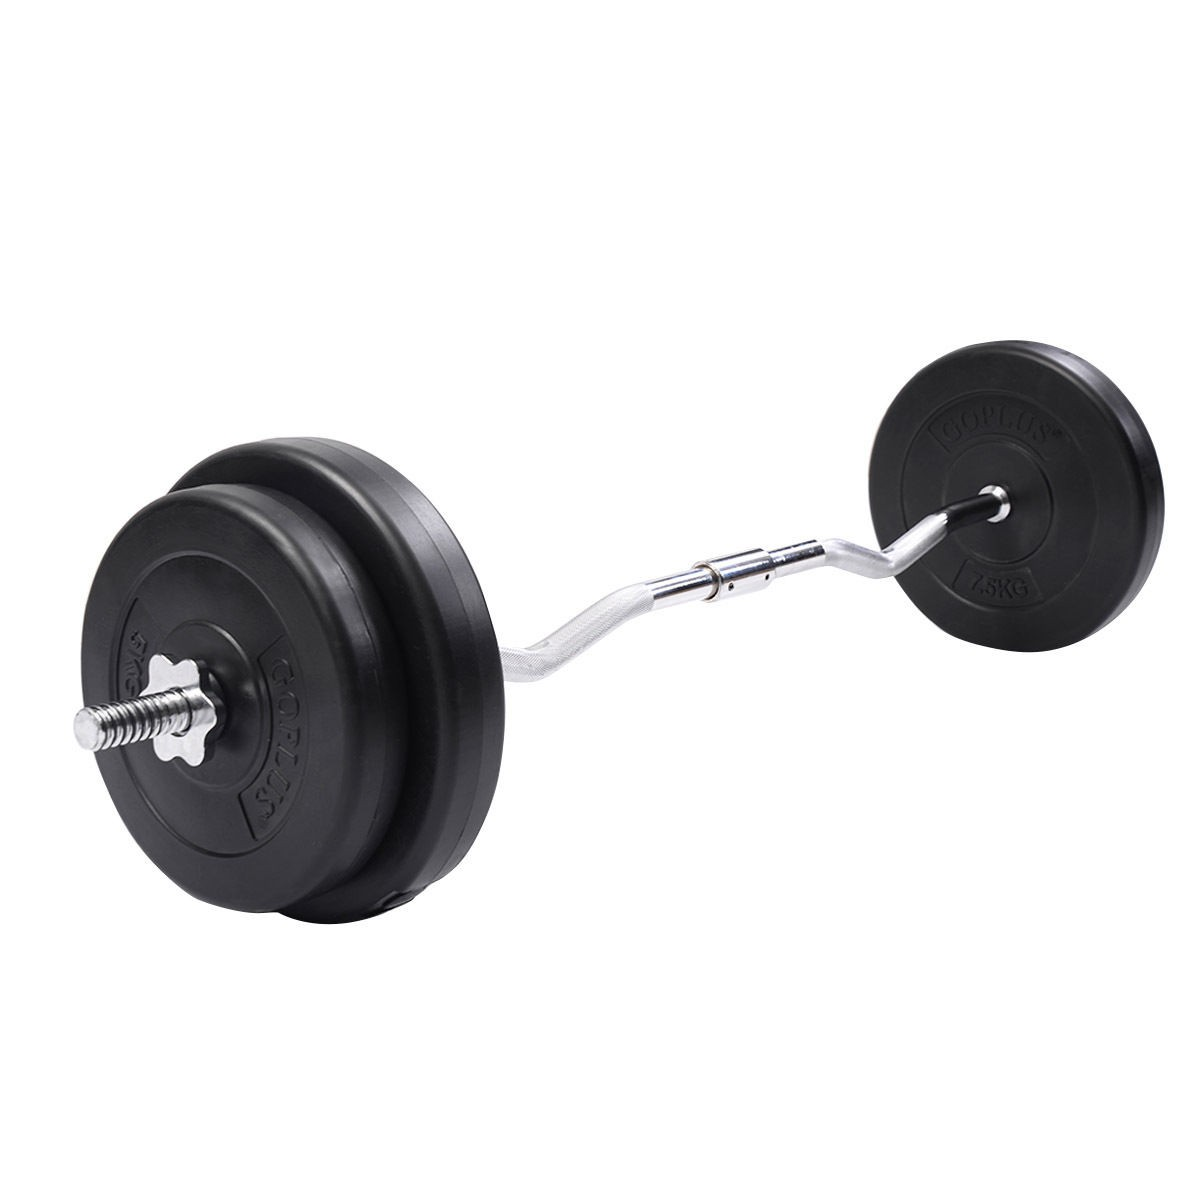 Cheapest Dumbbell Set: 64 LB Barbell Dumbbell Weight Set Gym Lifting Exercise